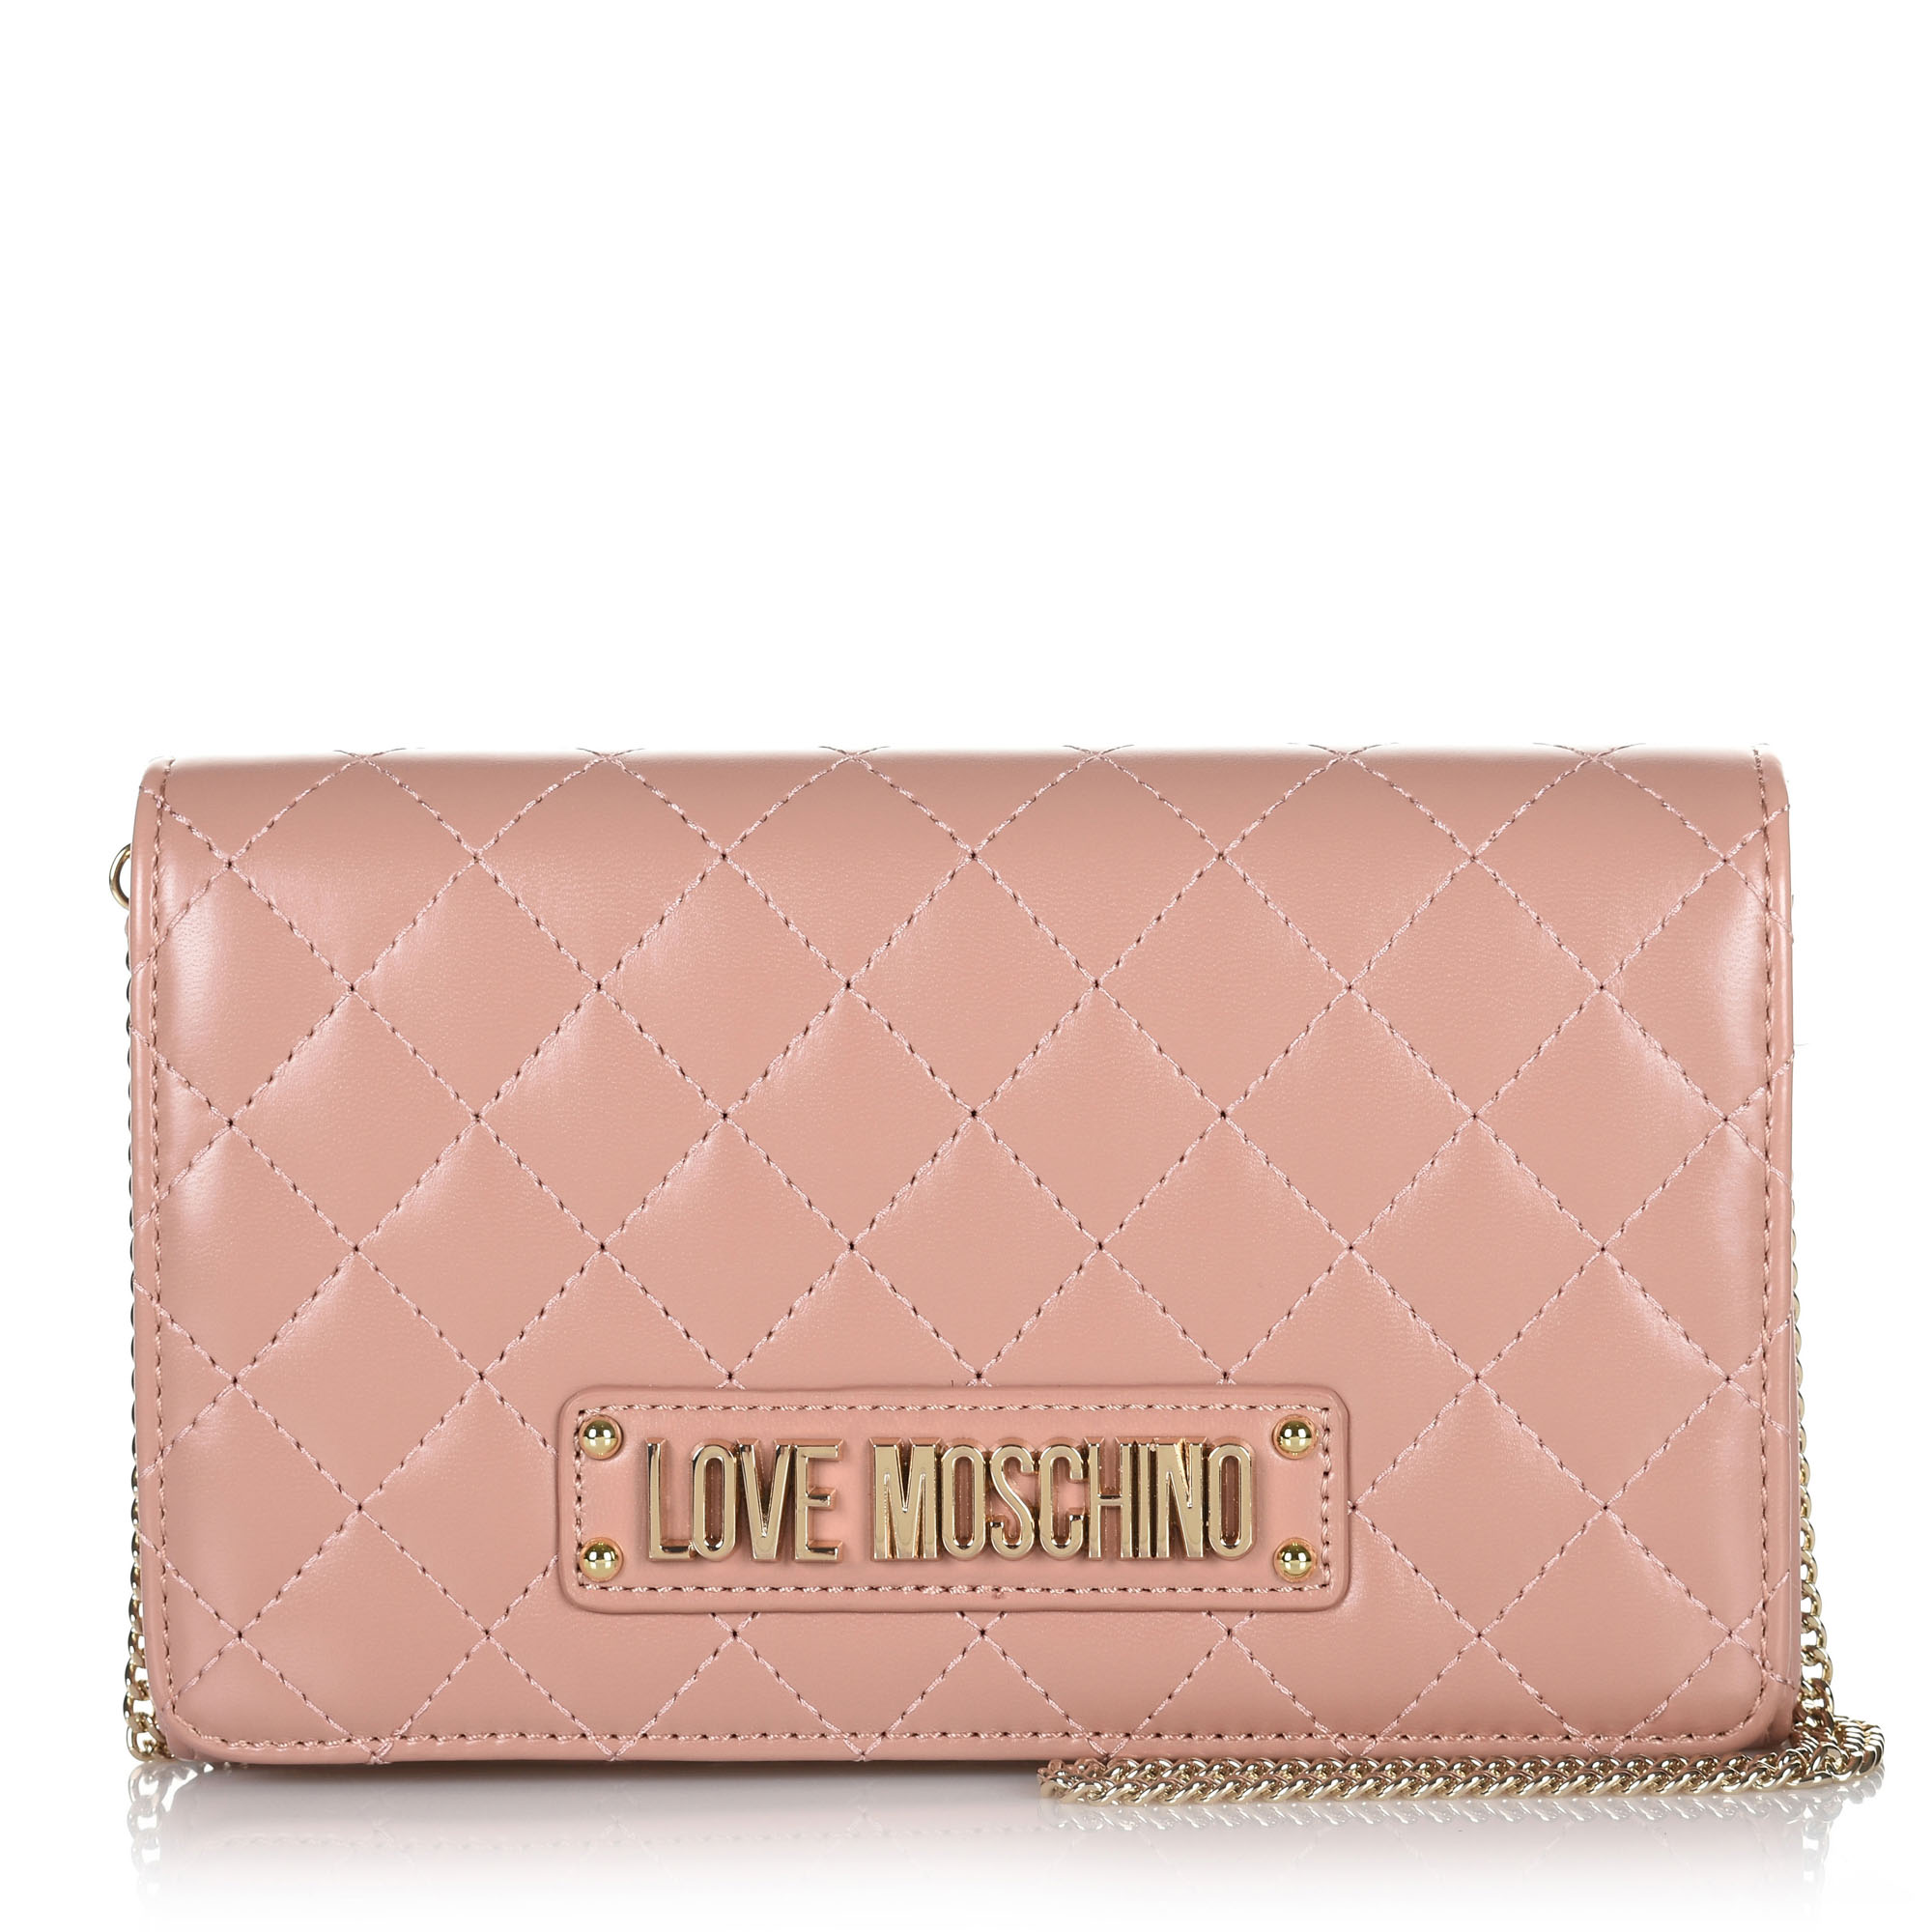 1260a44710 Τσαντάκι Ώμου-Χιαστί Love Moschino Quilted Nappa JC4118PP17L ...